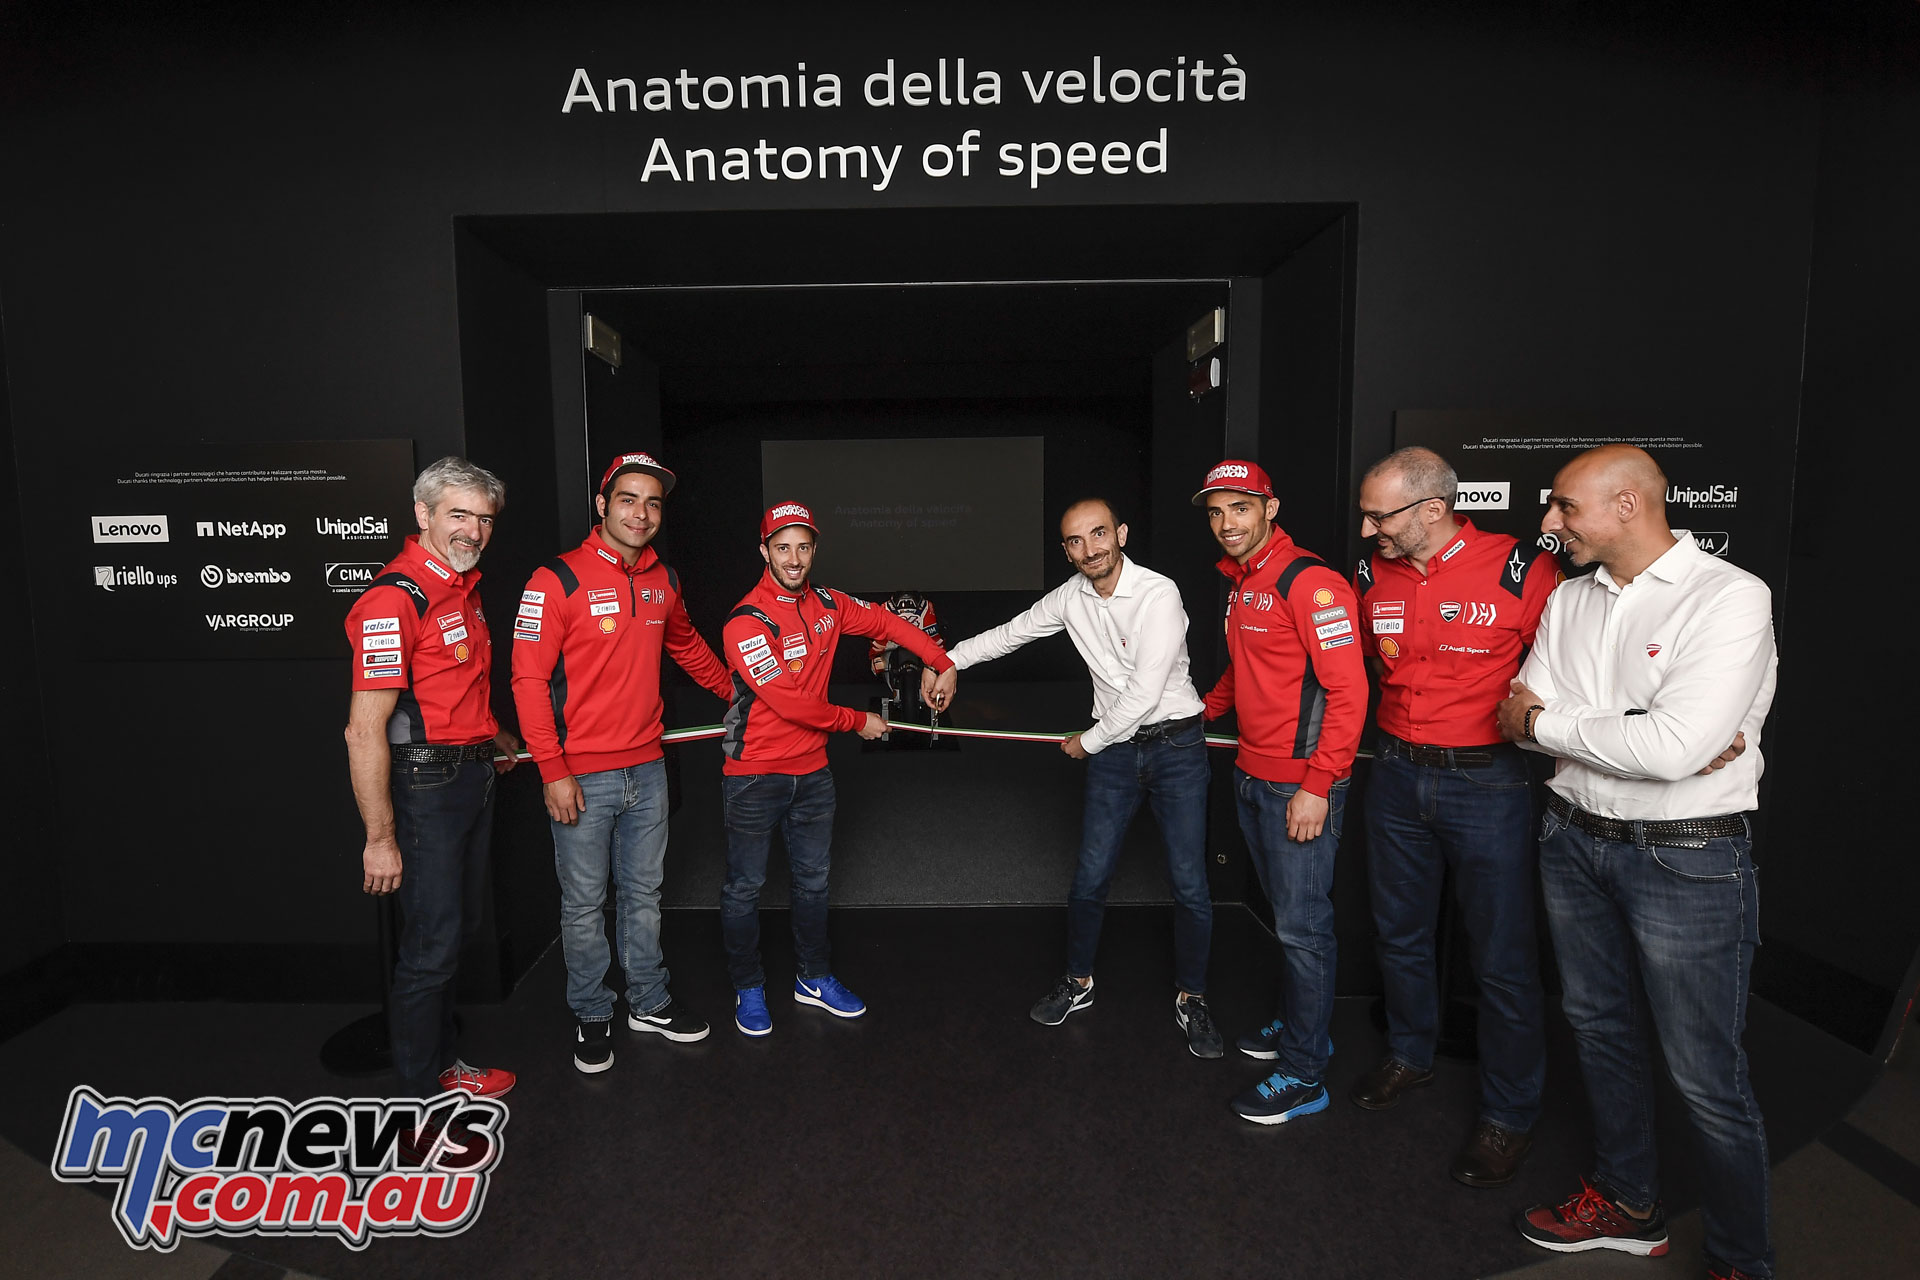 Ducati Museum Anatomy of Speed exhibition